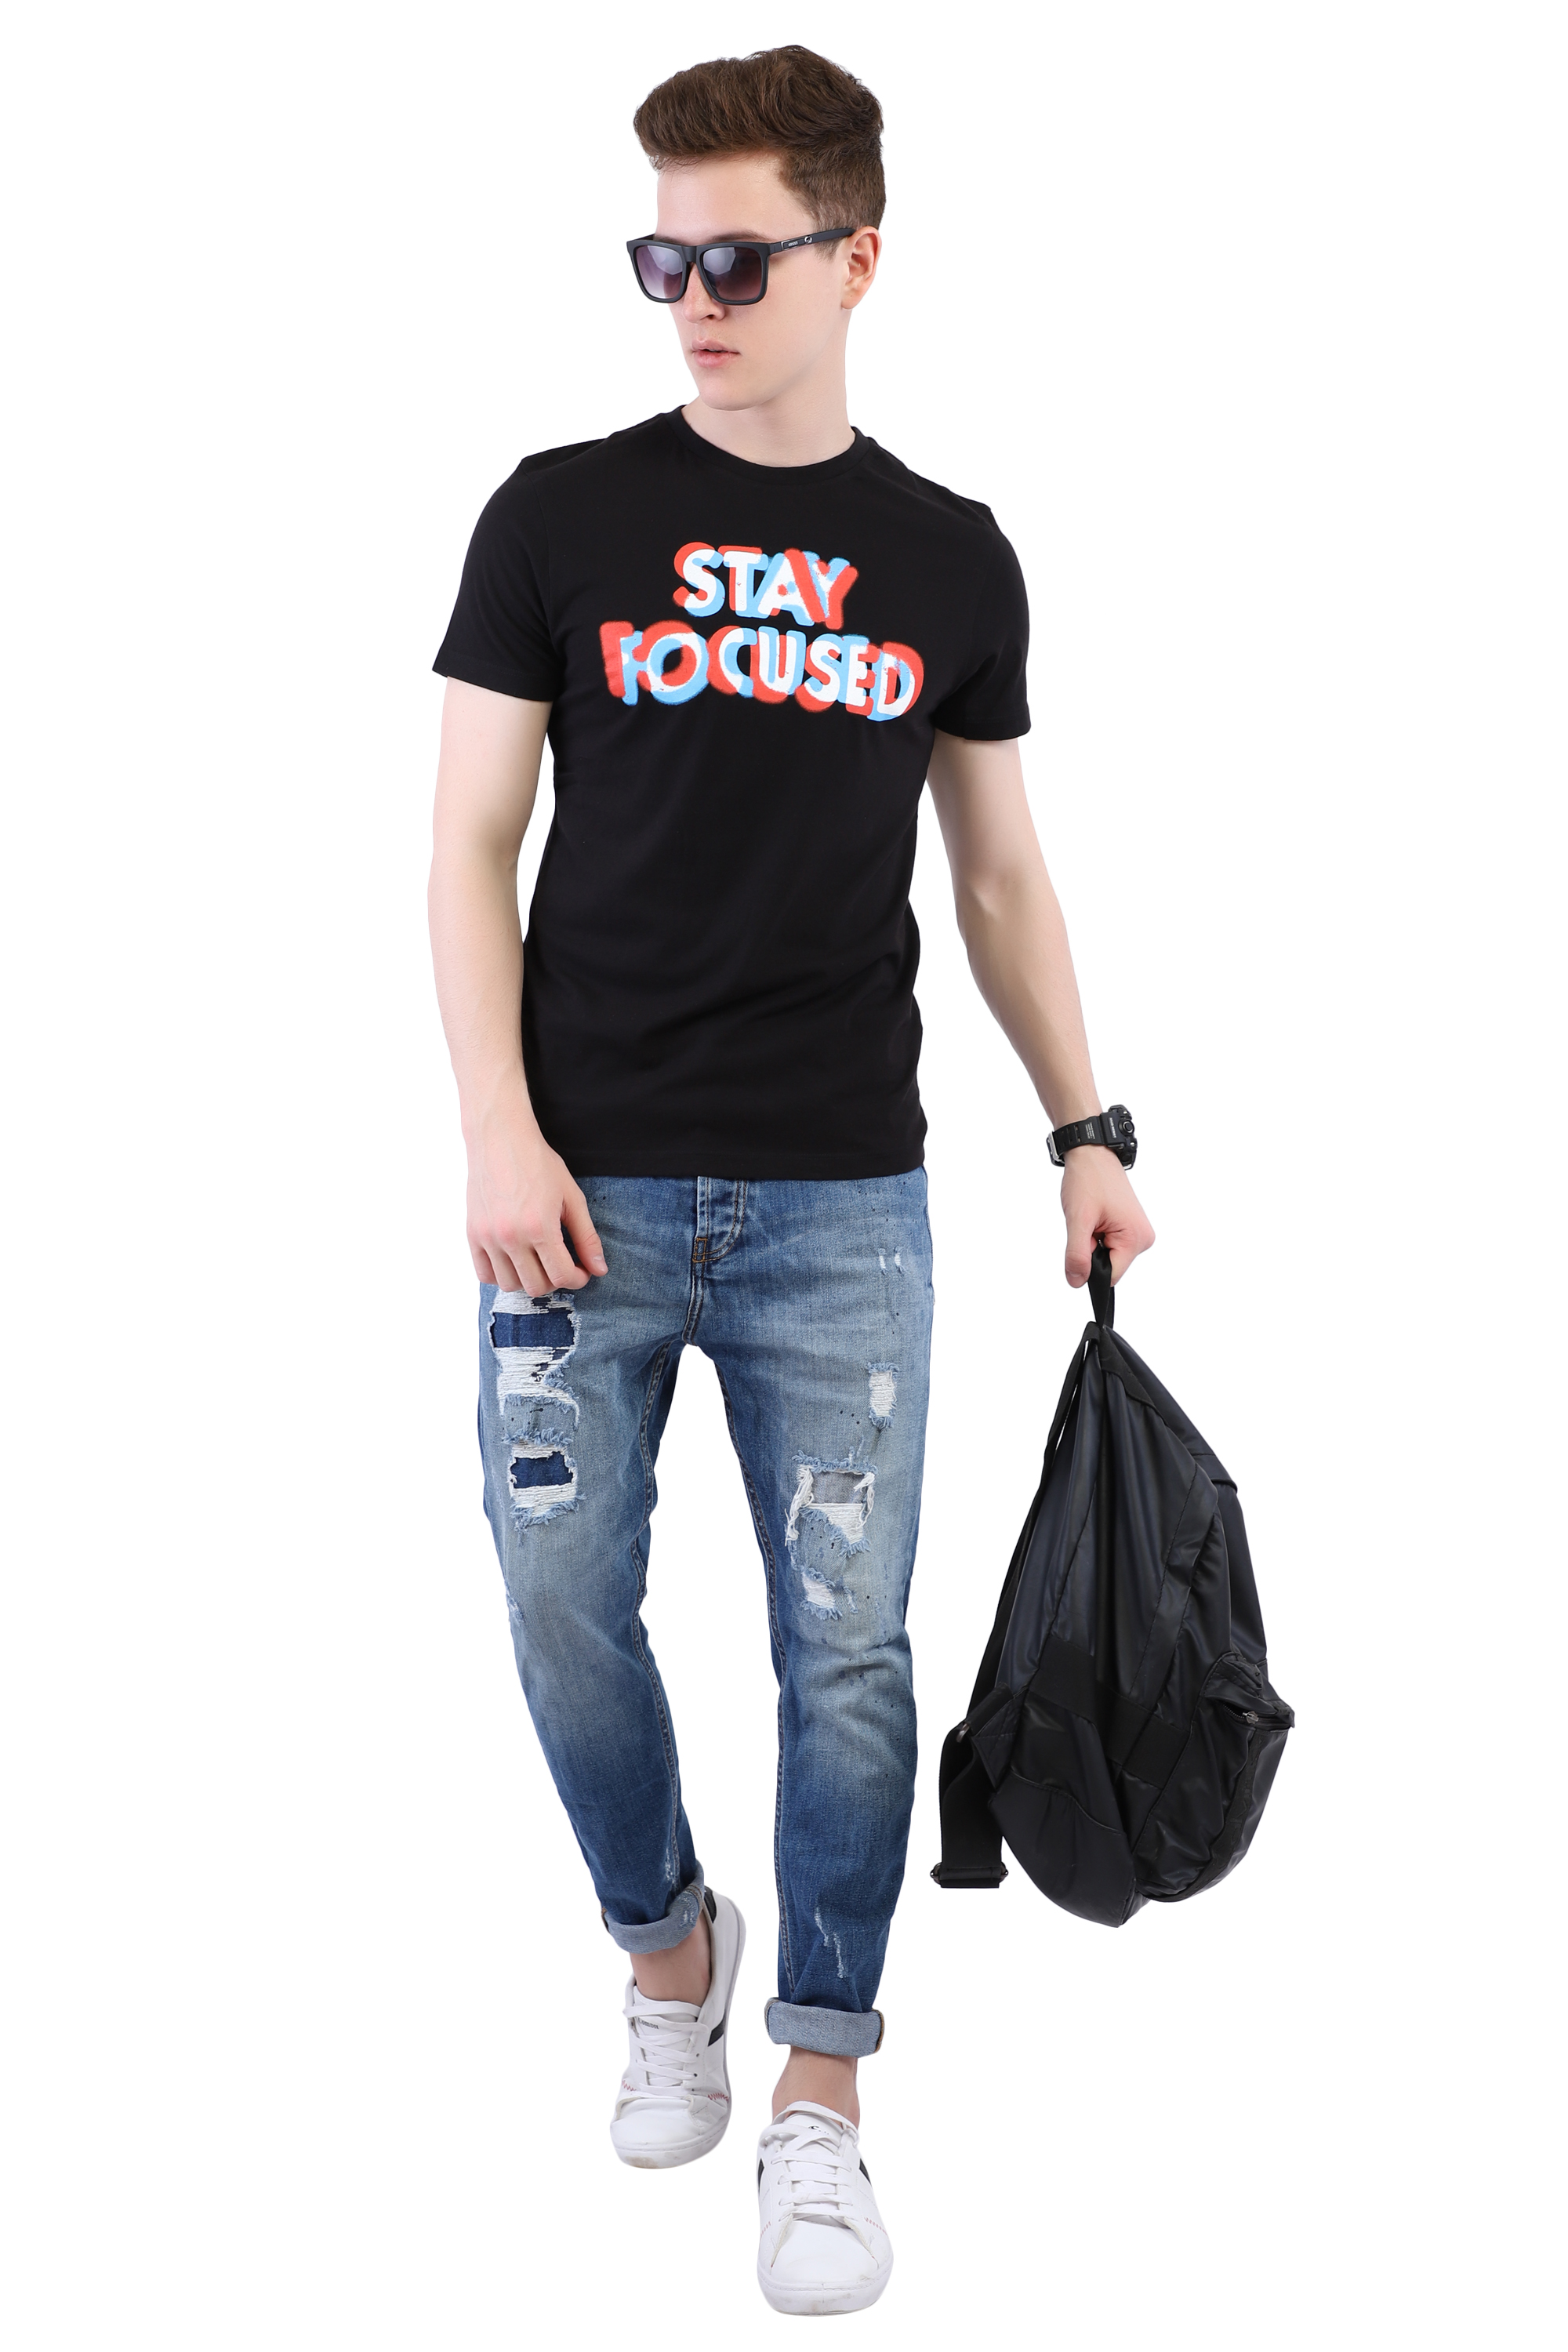 Black T-shirt (Stay Focused) Image